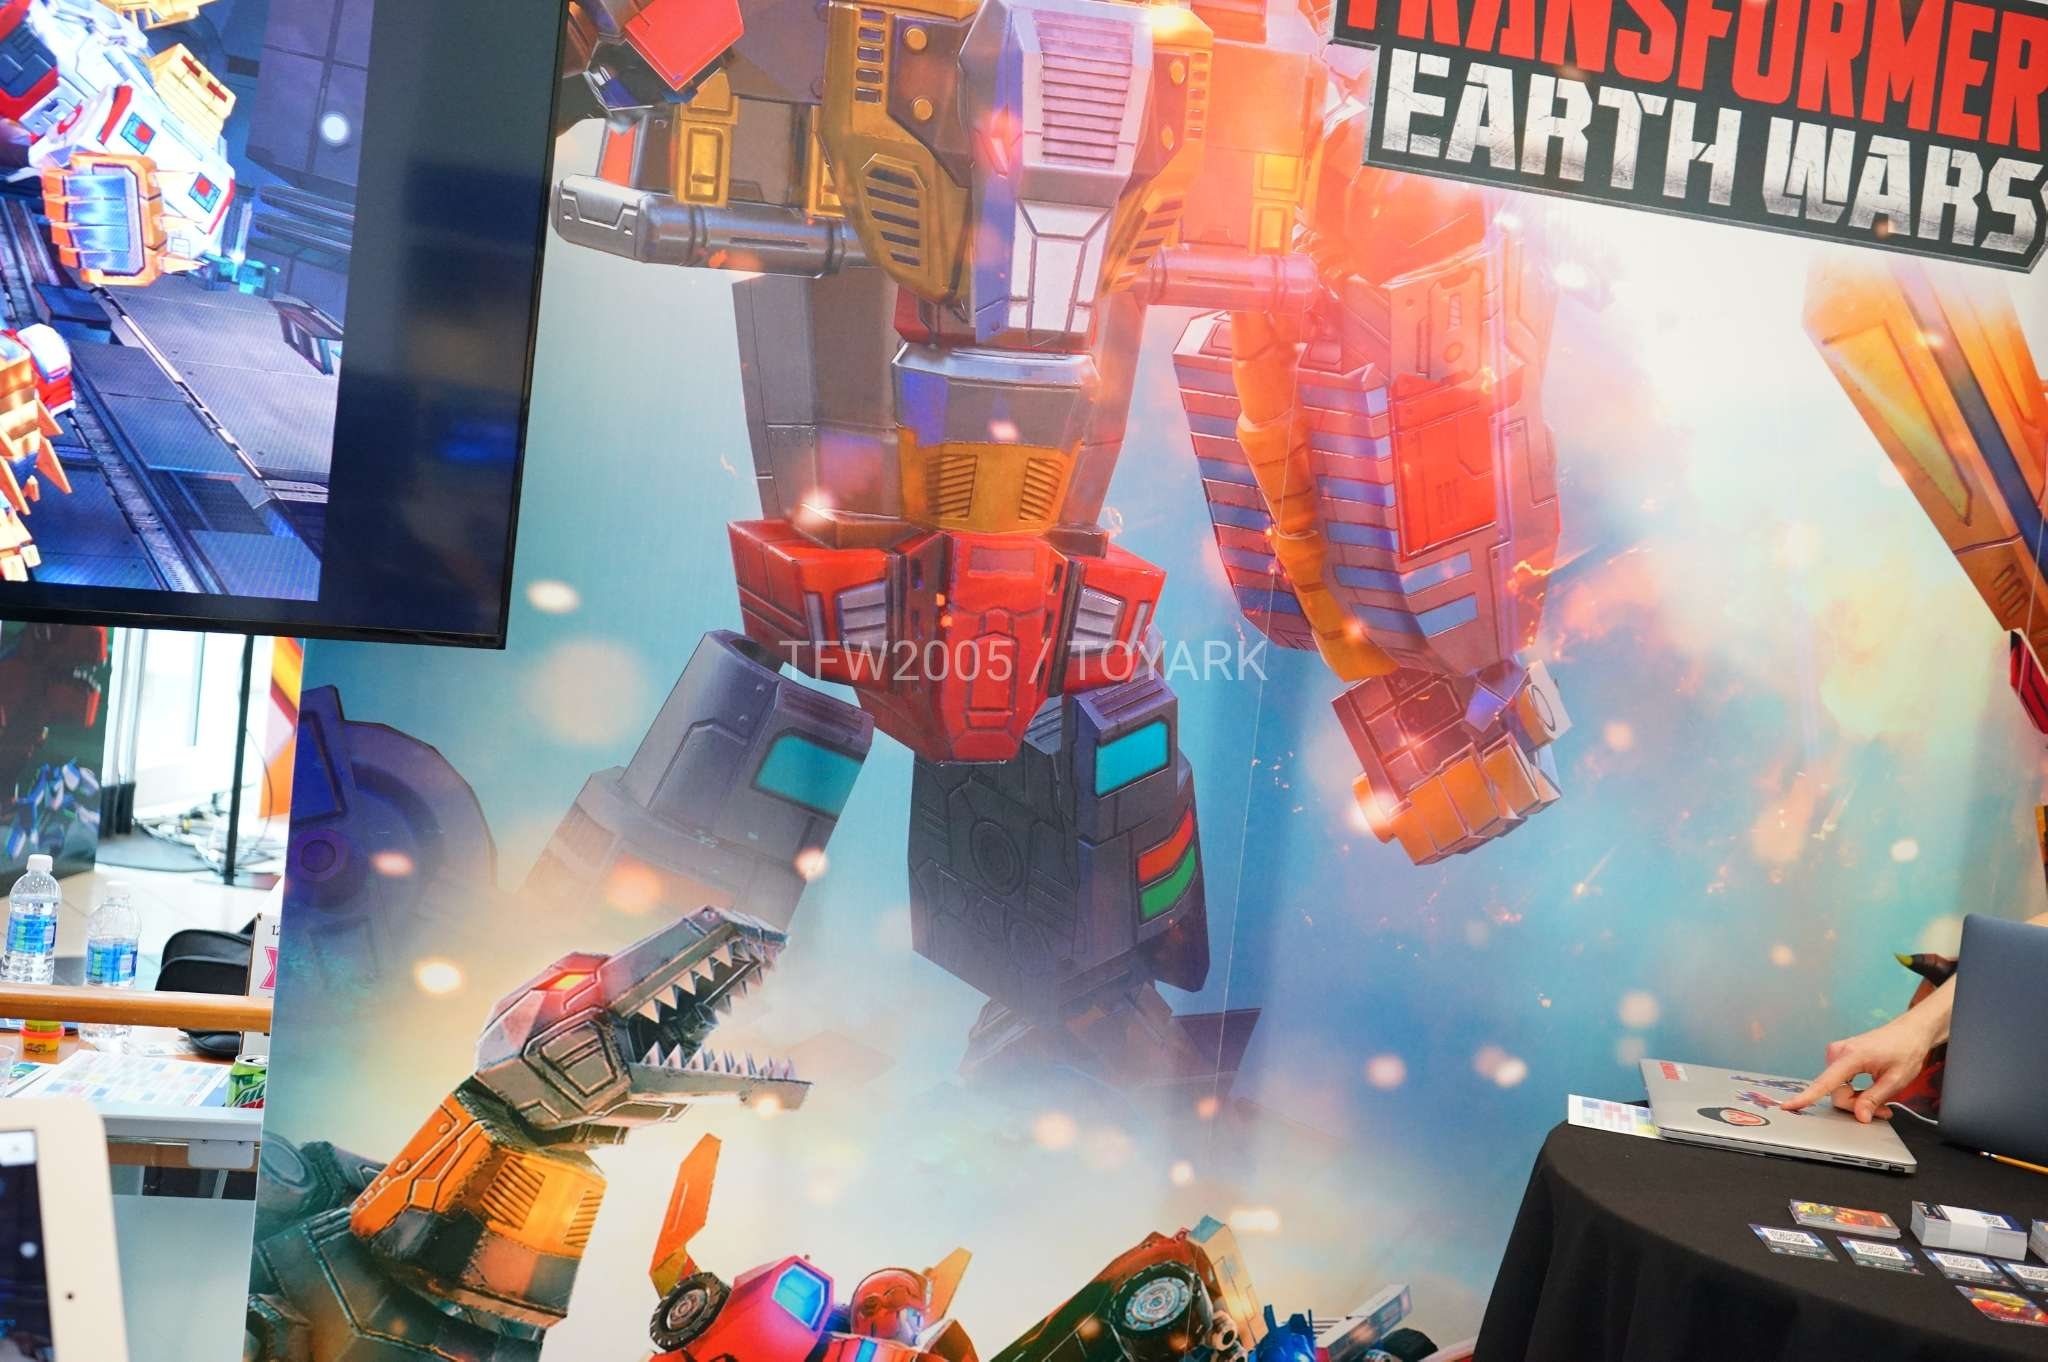 Hascon 2017 Earth Wars Booth Dinobot Combiner